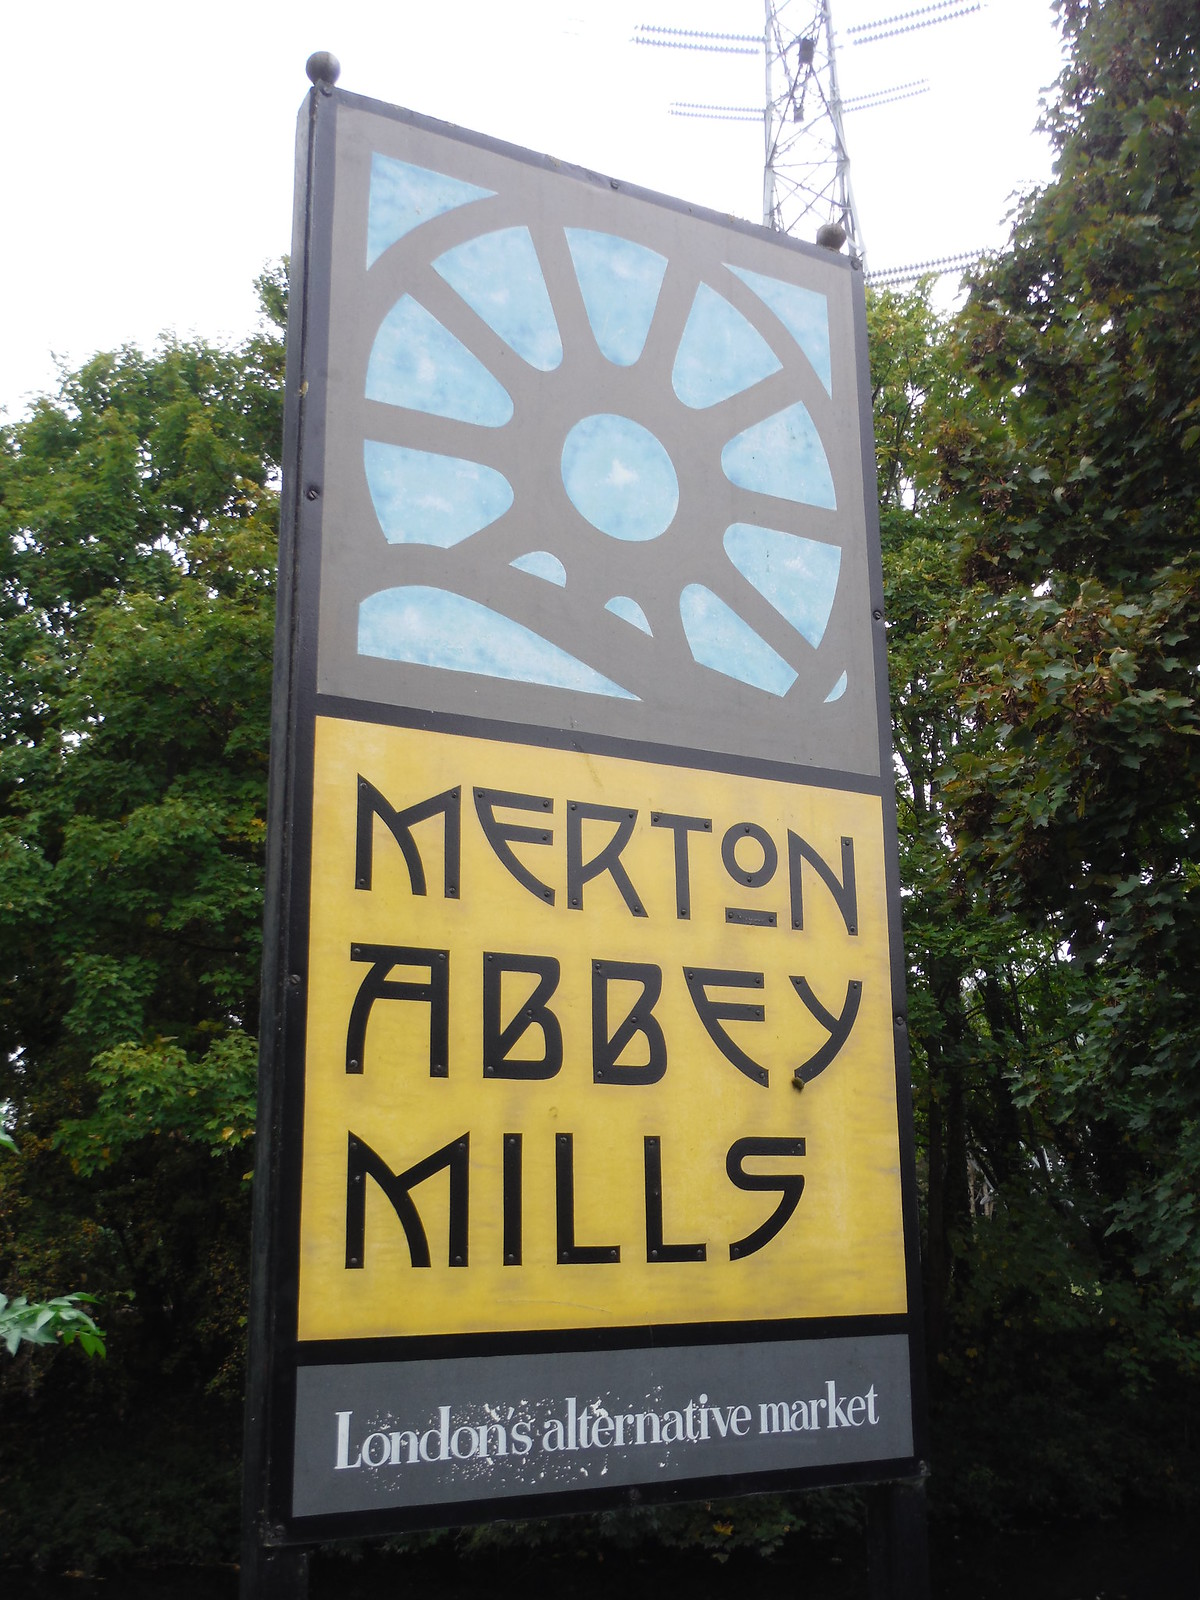 Merton Abbey Mills Sign SWC Walk Short 13 - Morden Hall Park and Merton Abbey Mills